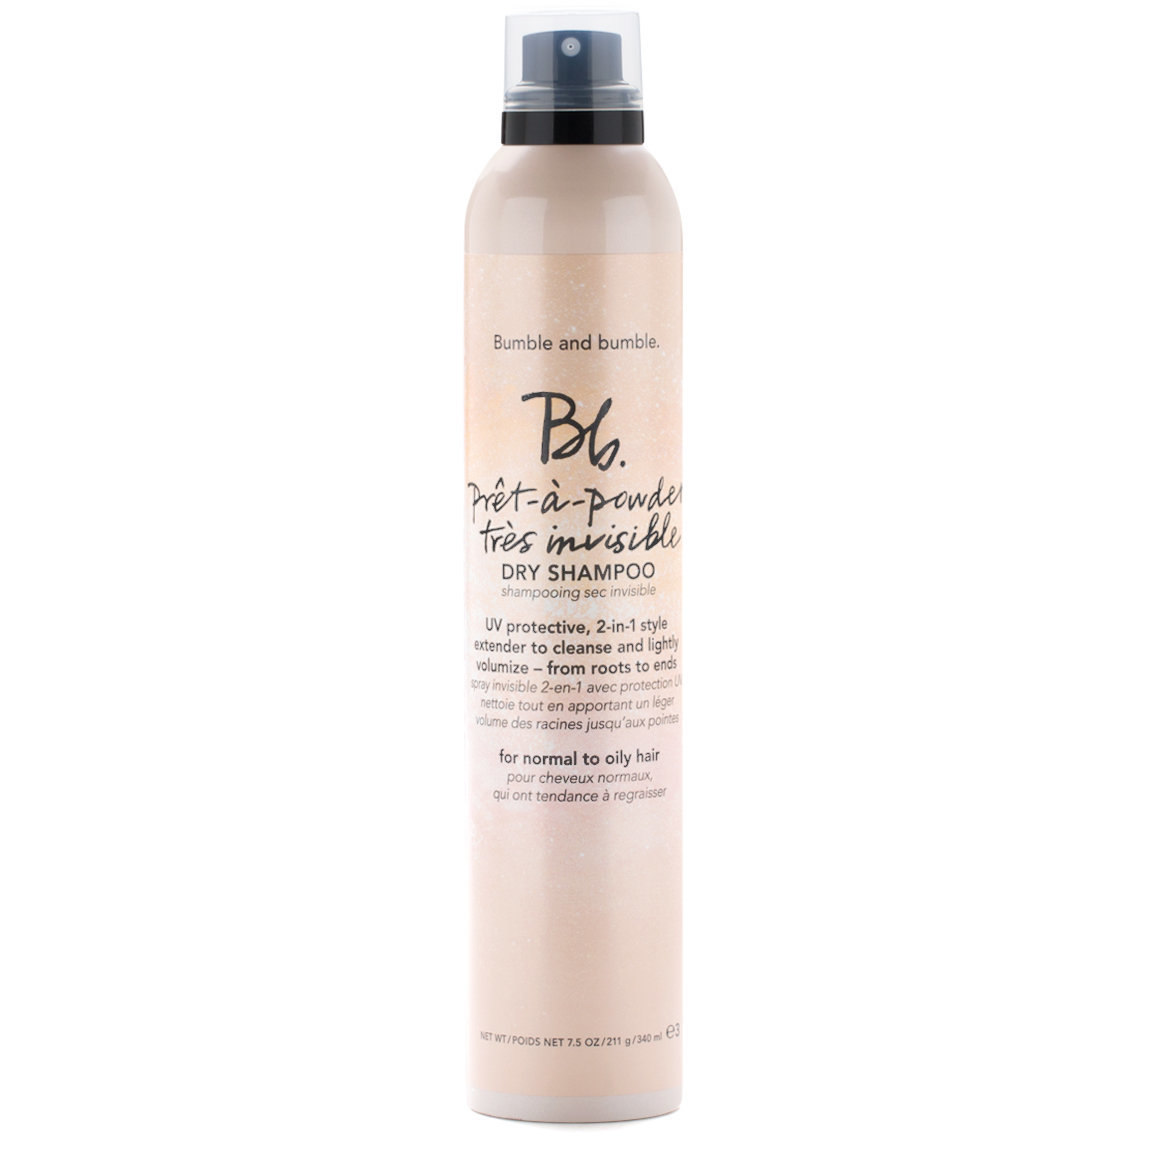 Bumble and bumble. Prêt-à-powder Très Invisible Dry Shampoo Jumbo - 340ml product smear.